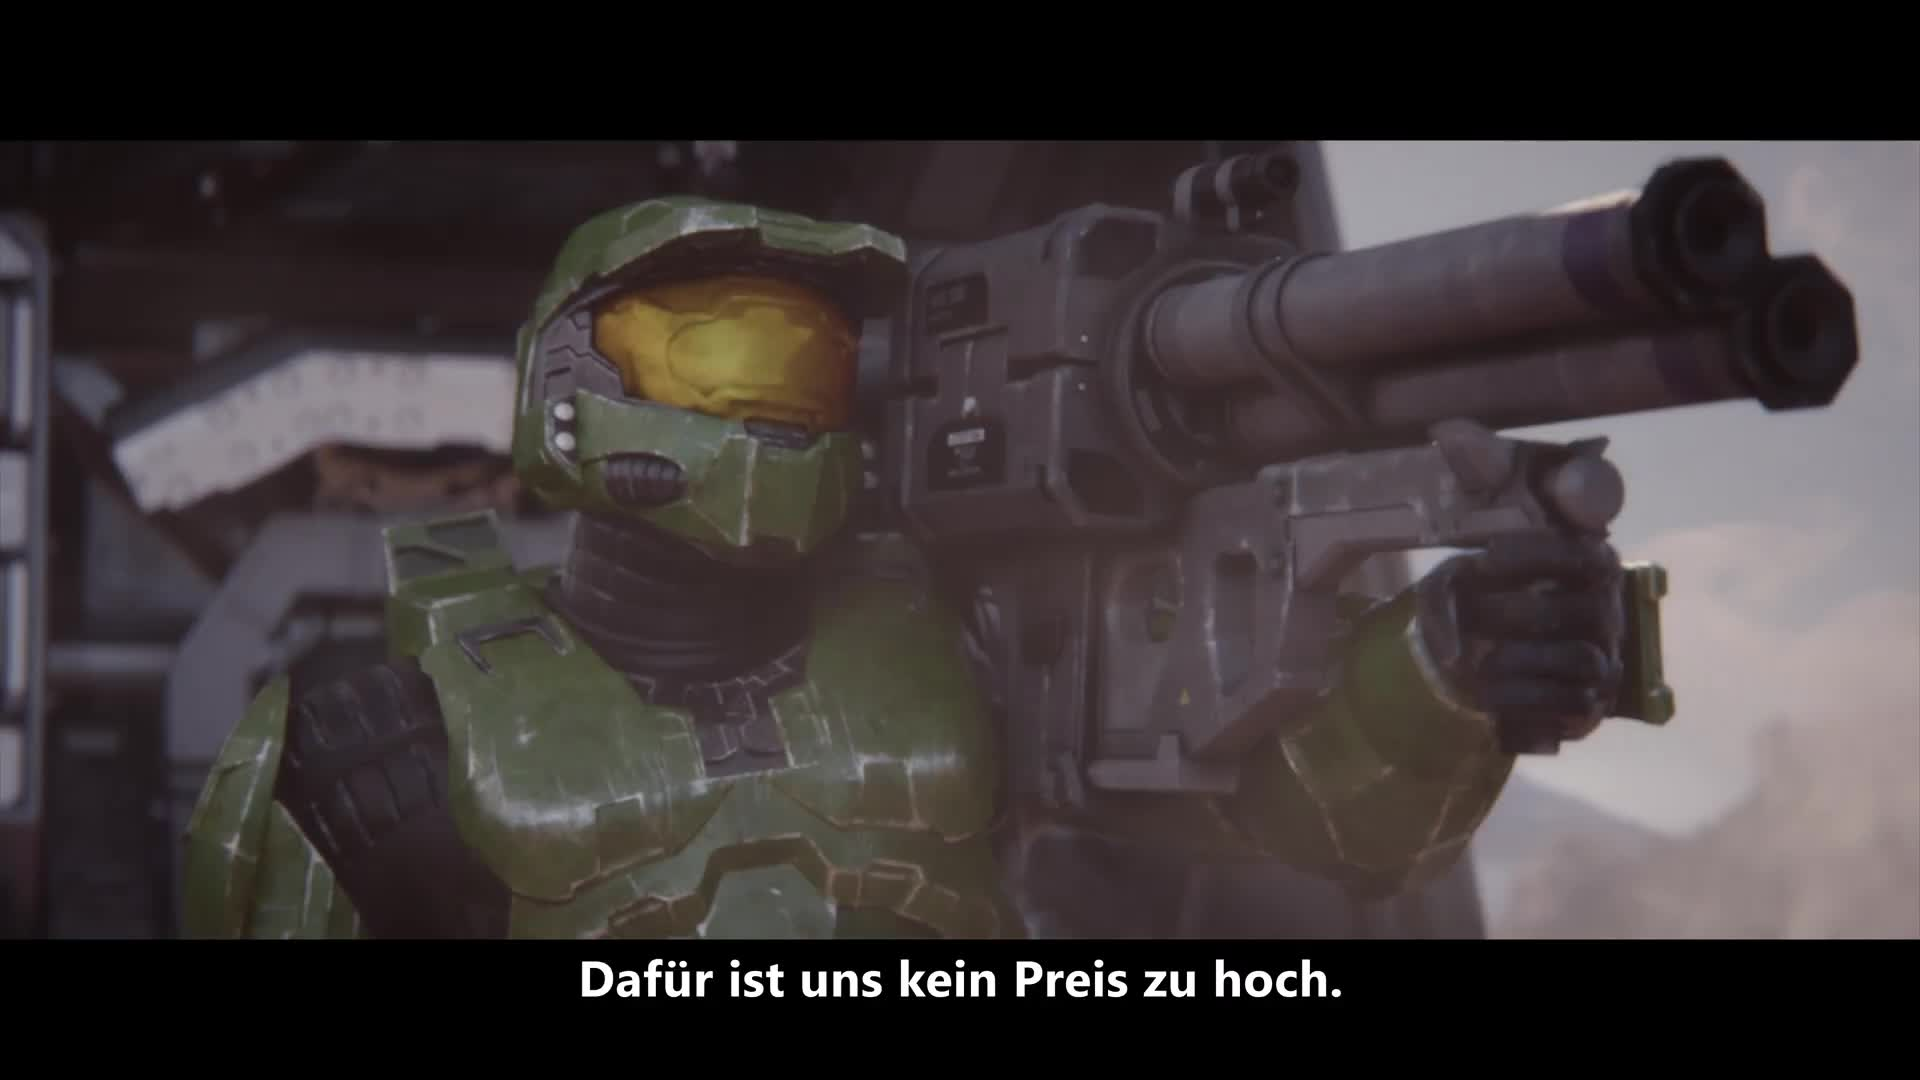 Microsoft, Trailer, Pc, actionspiel, Halo, Videospiele, Computerspiele, The Master Chief Collection, Master Chief